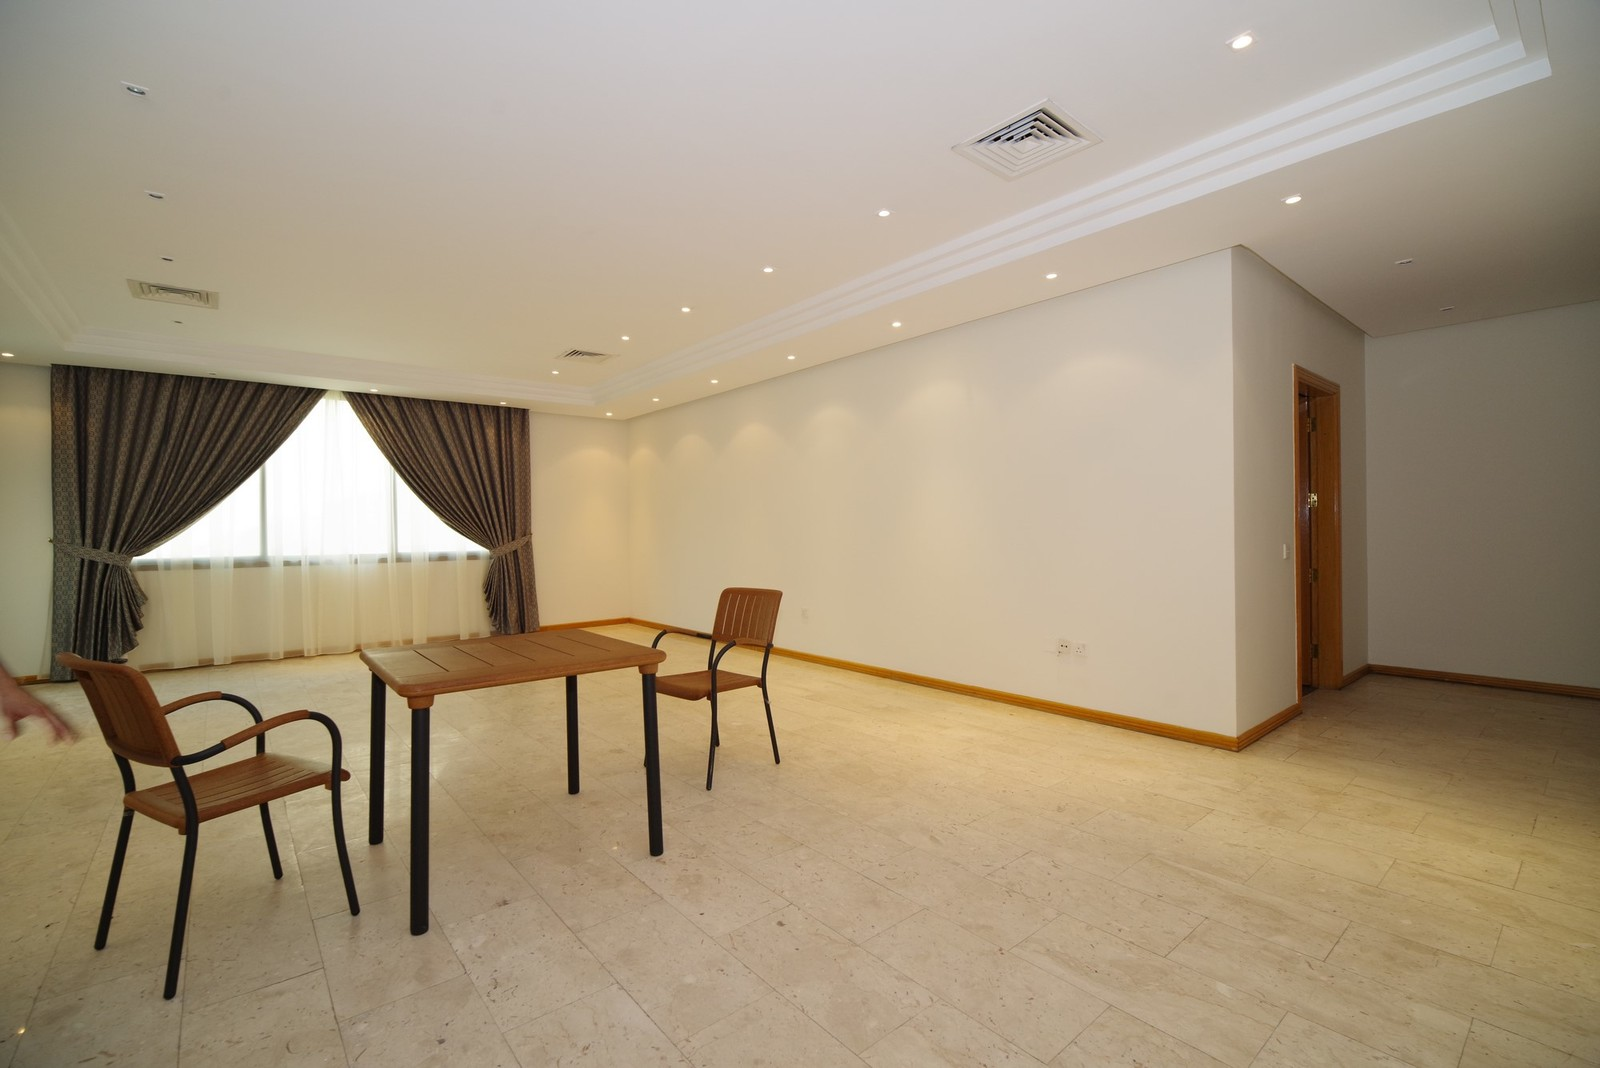 Salwa – older, large, unfurnished three bedroom apartments